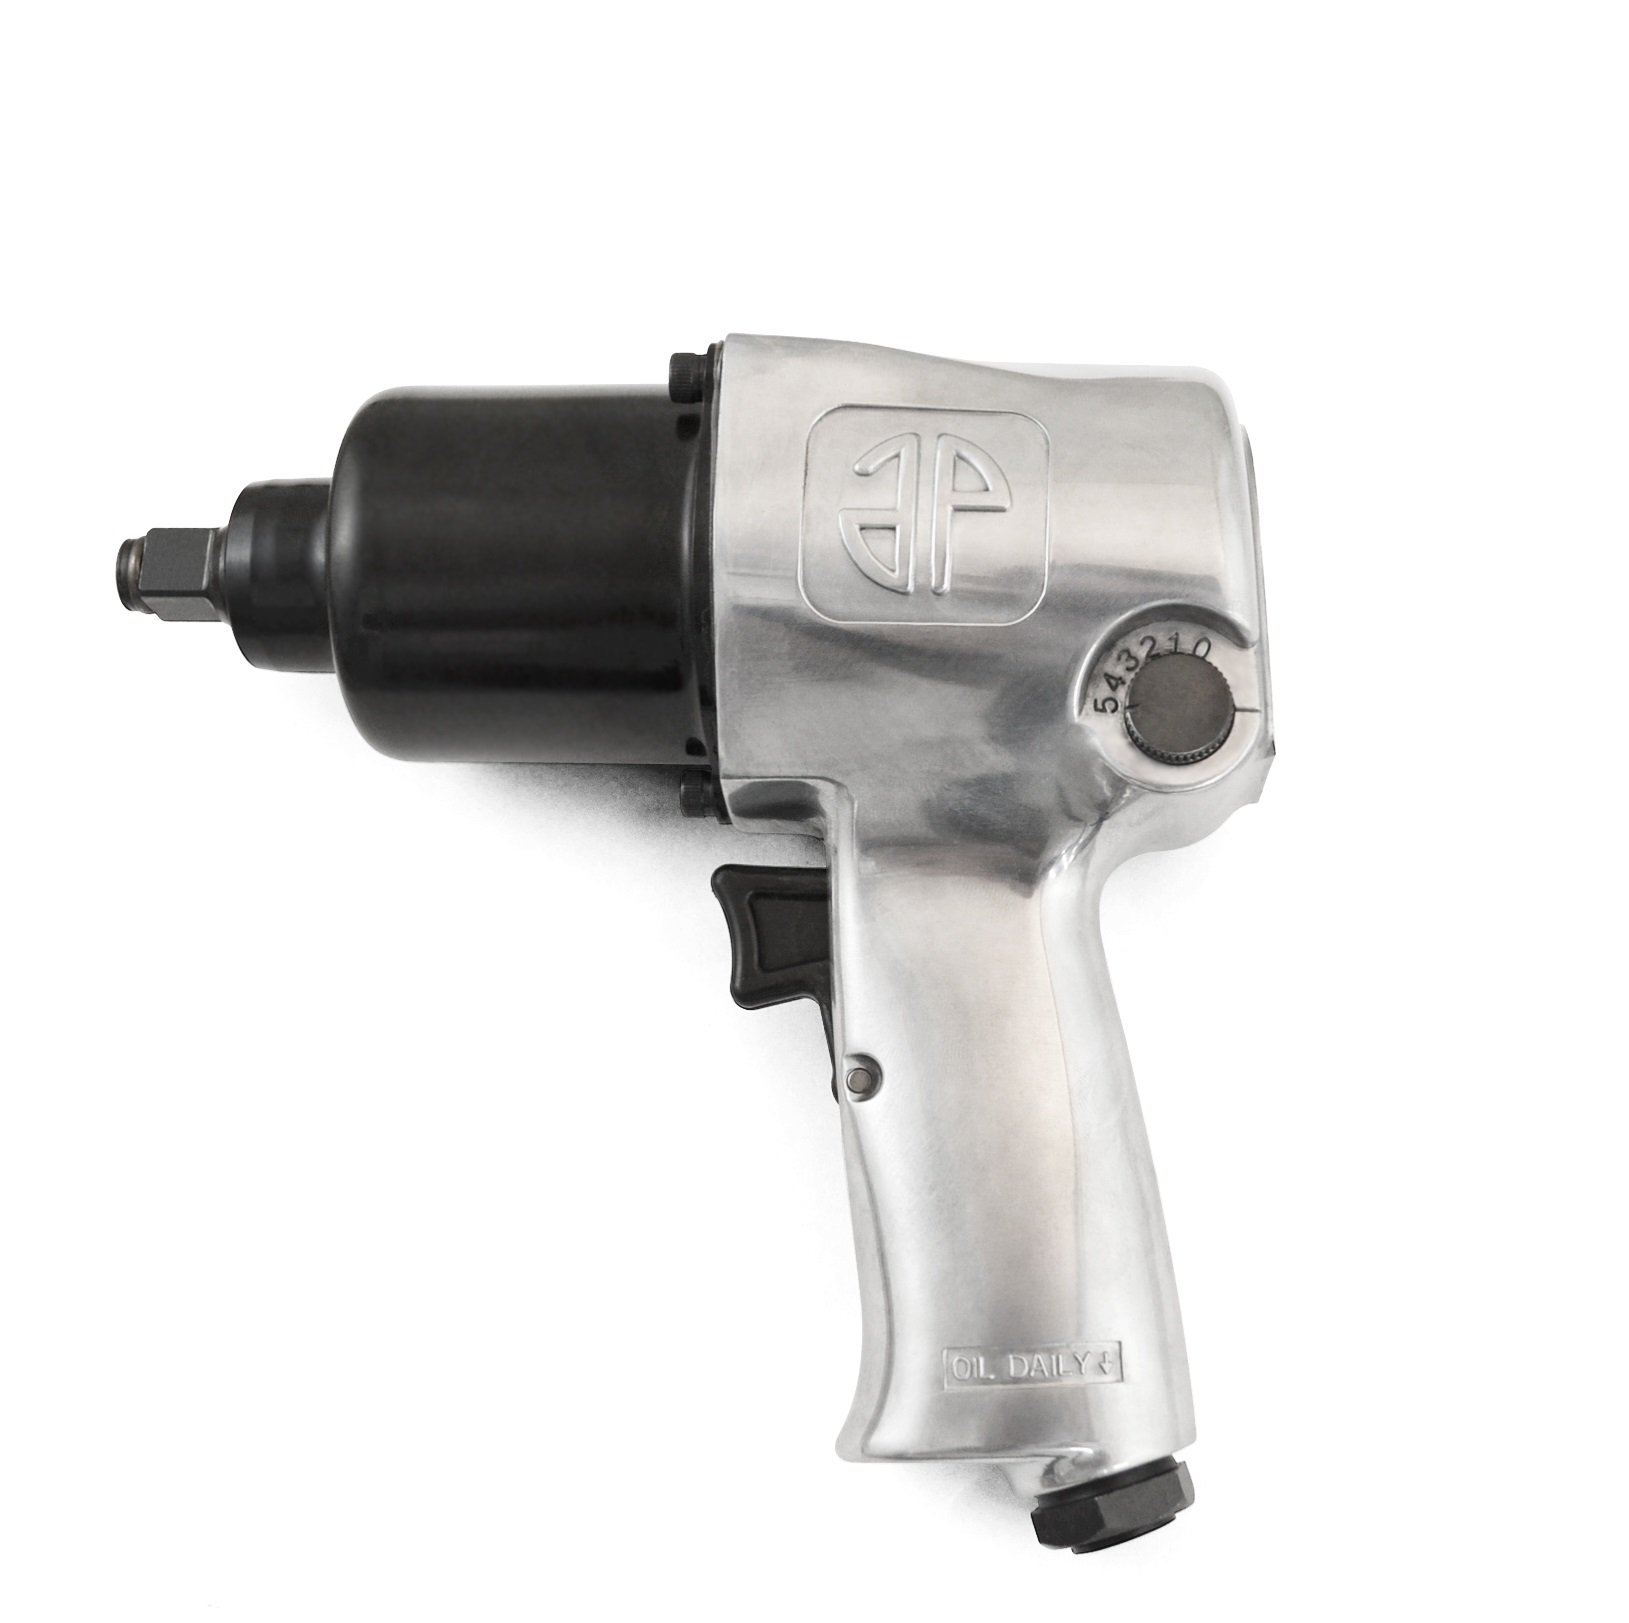 Astro 1812 1/2-Inch Super Duty Impact Wrench, Twin Hammer